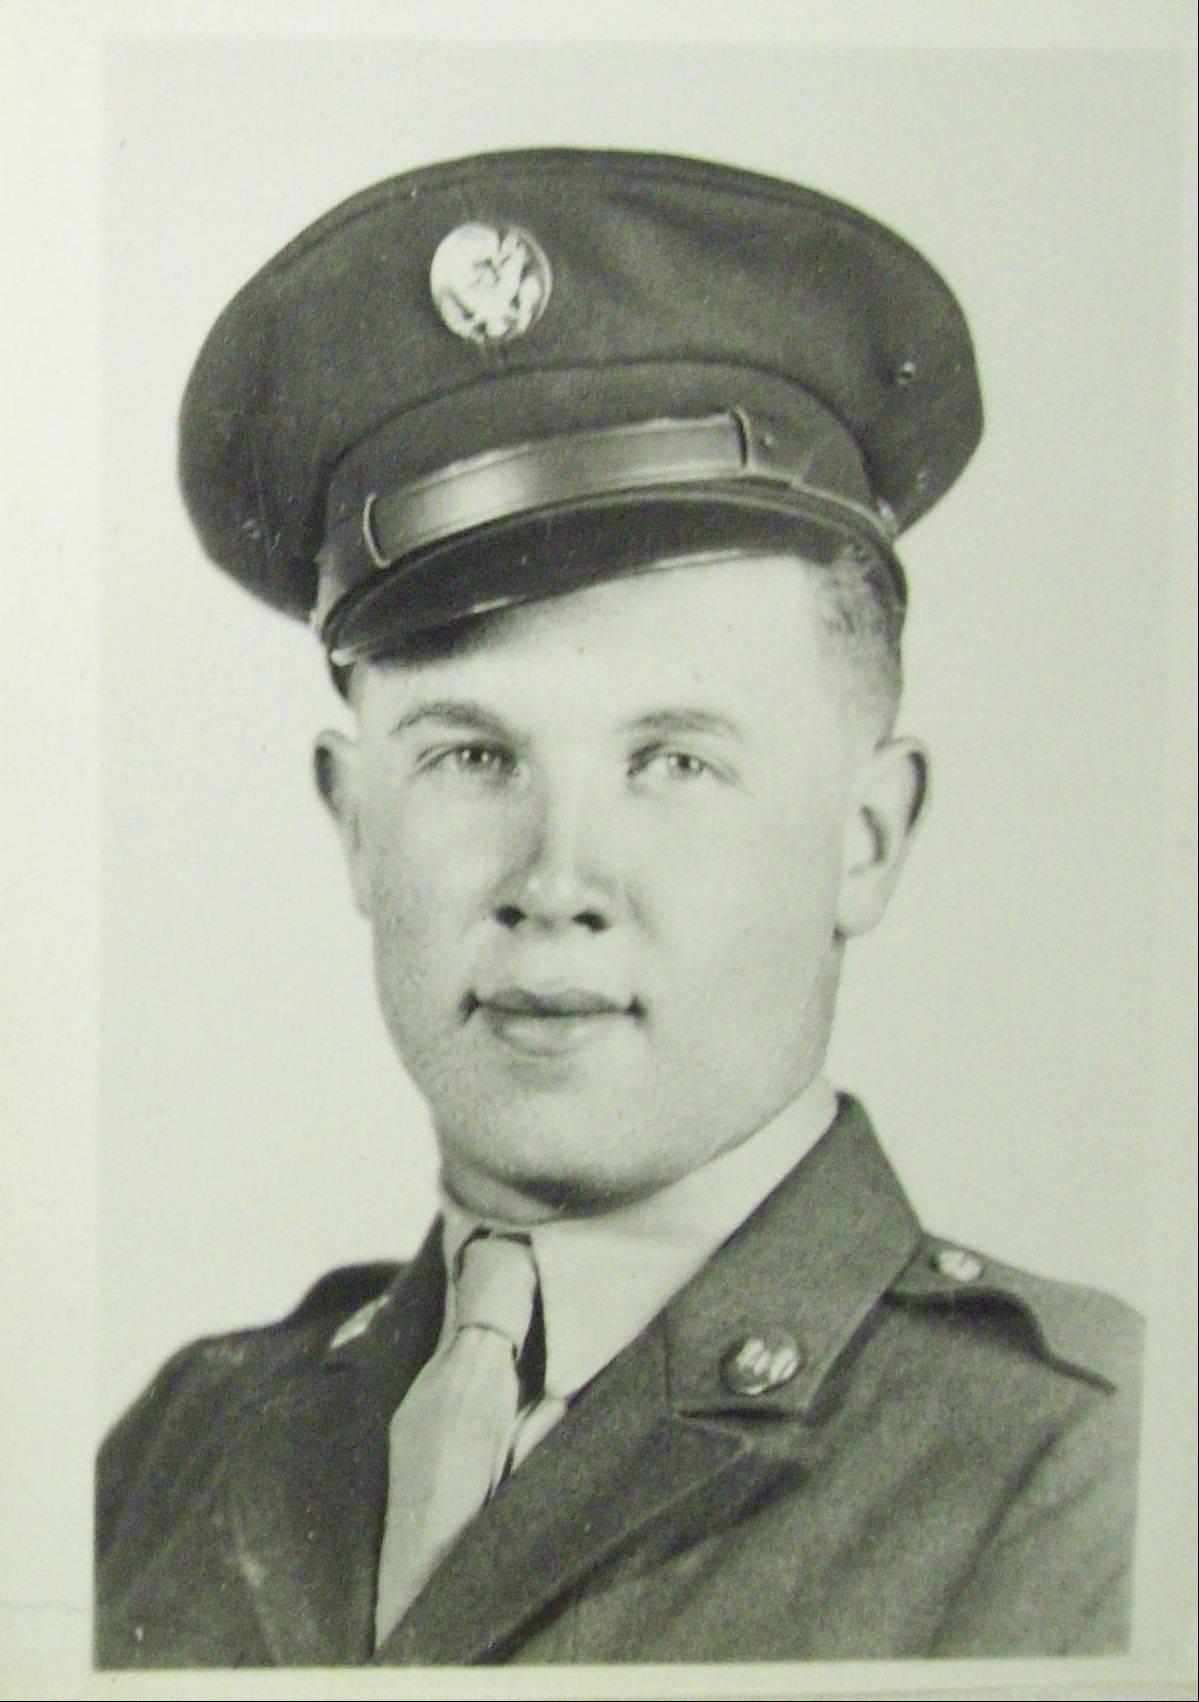 Ernie Reynolds enlisted in the armed services in 1943 and served with the 249th Combat Engineers Battalion, which later became part of General Patton's Third Army.